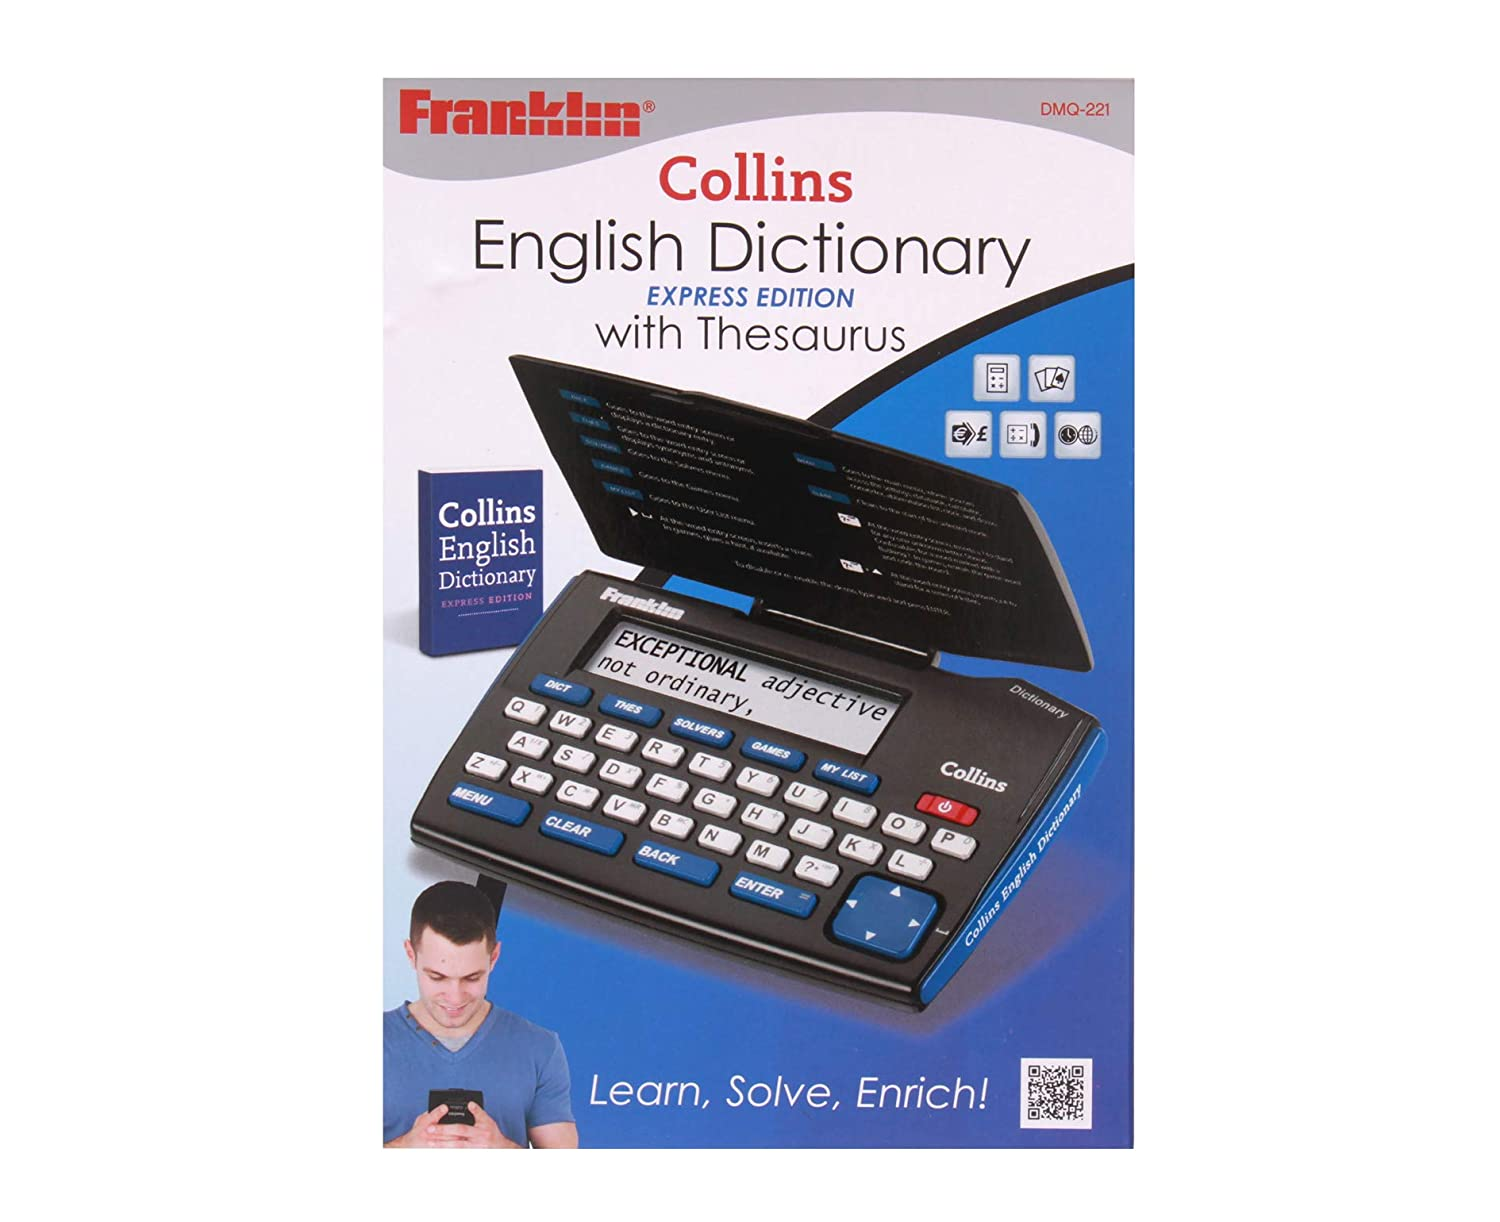 Franklin DMQ221 Collins English Dictionary with Thesaurus OfficeCentre DMQ-221